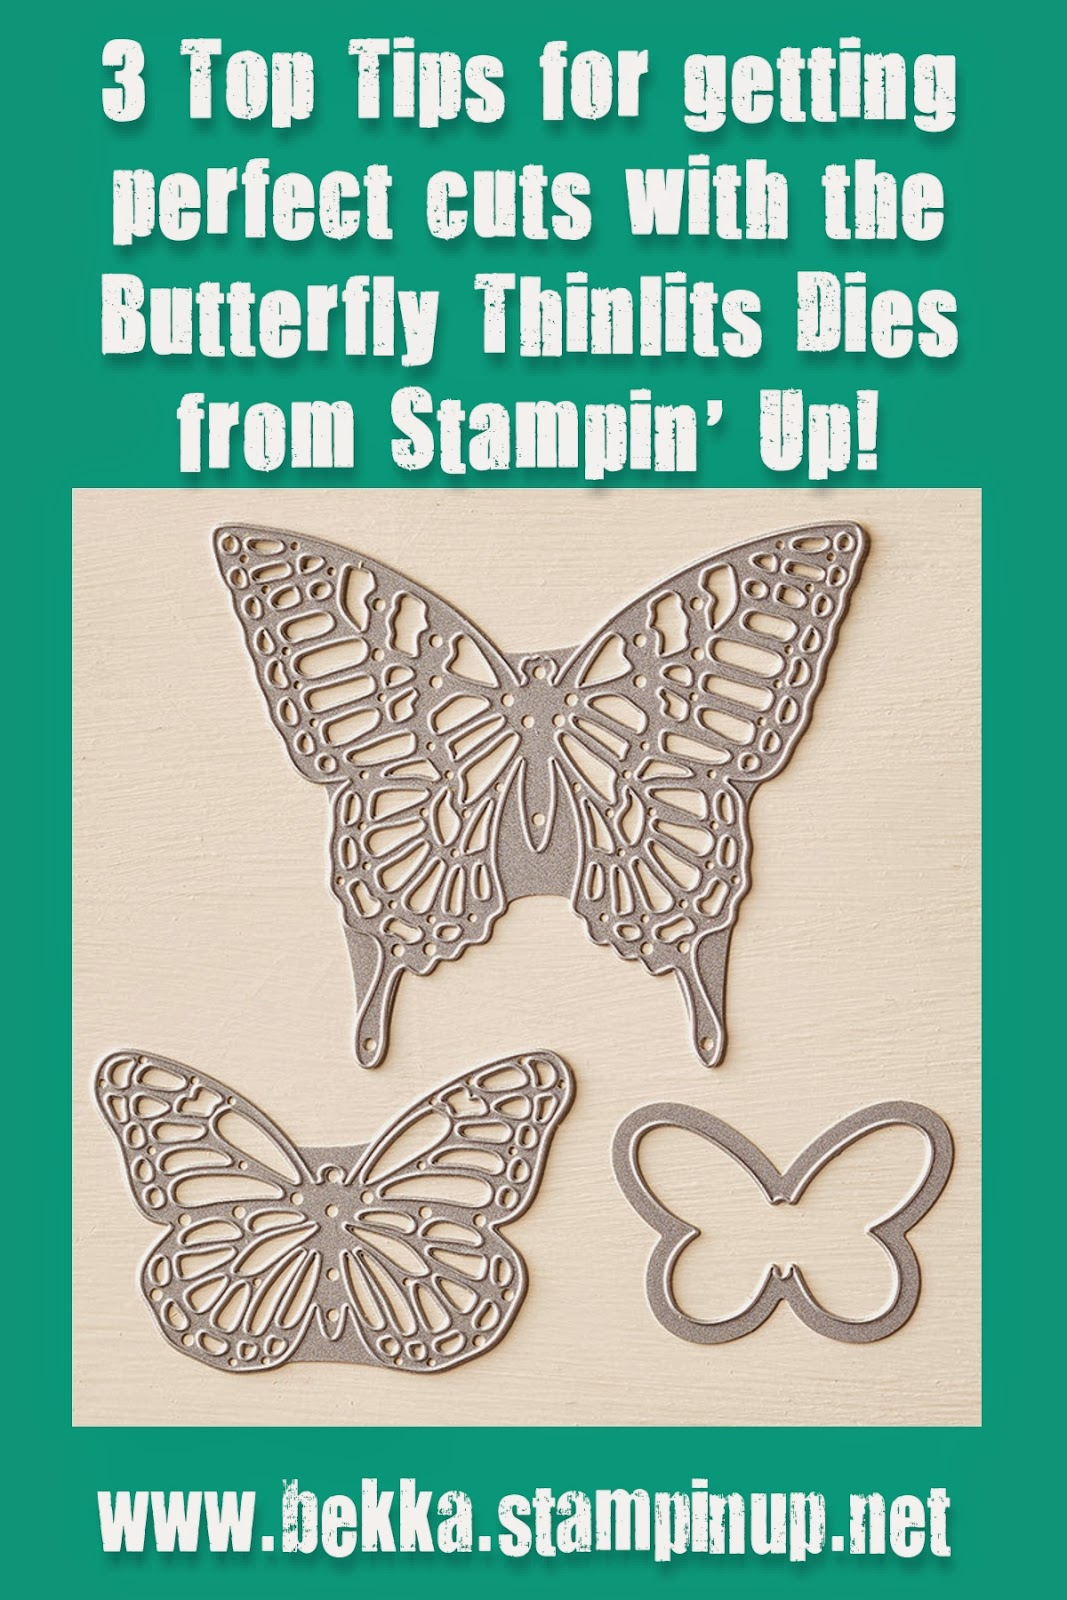 3 Top Tips for getting Perfect Cuts with the Butterfly Thinlits Die from Stampin' Up! UK - get the tips and the dies here!